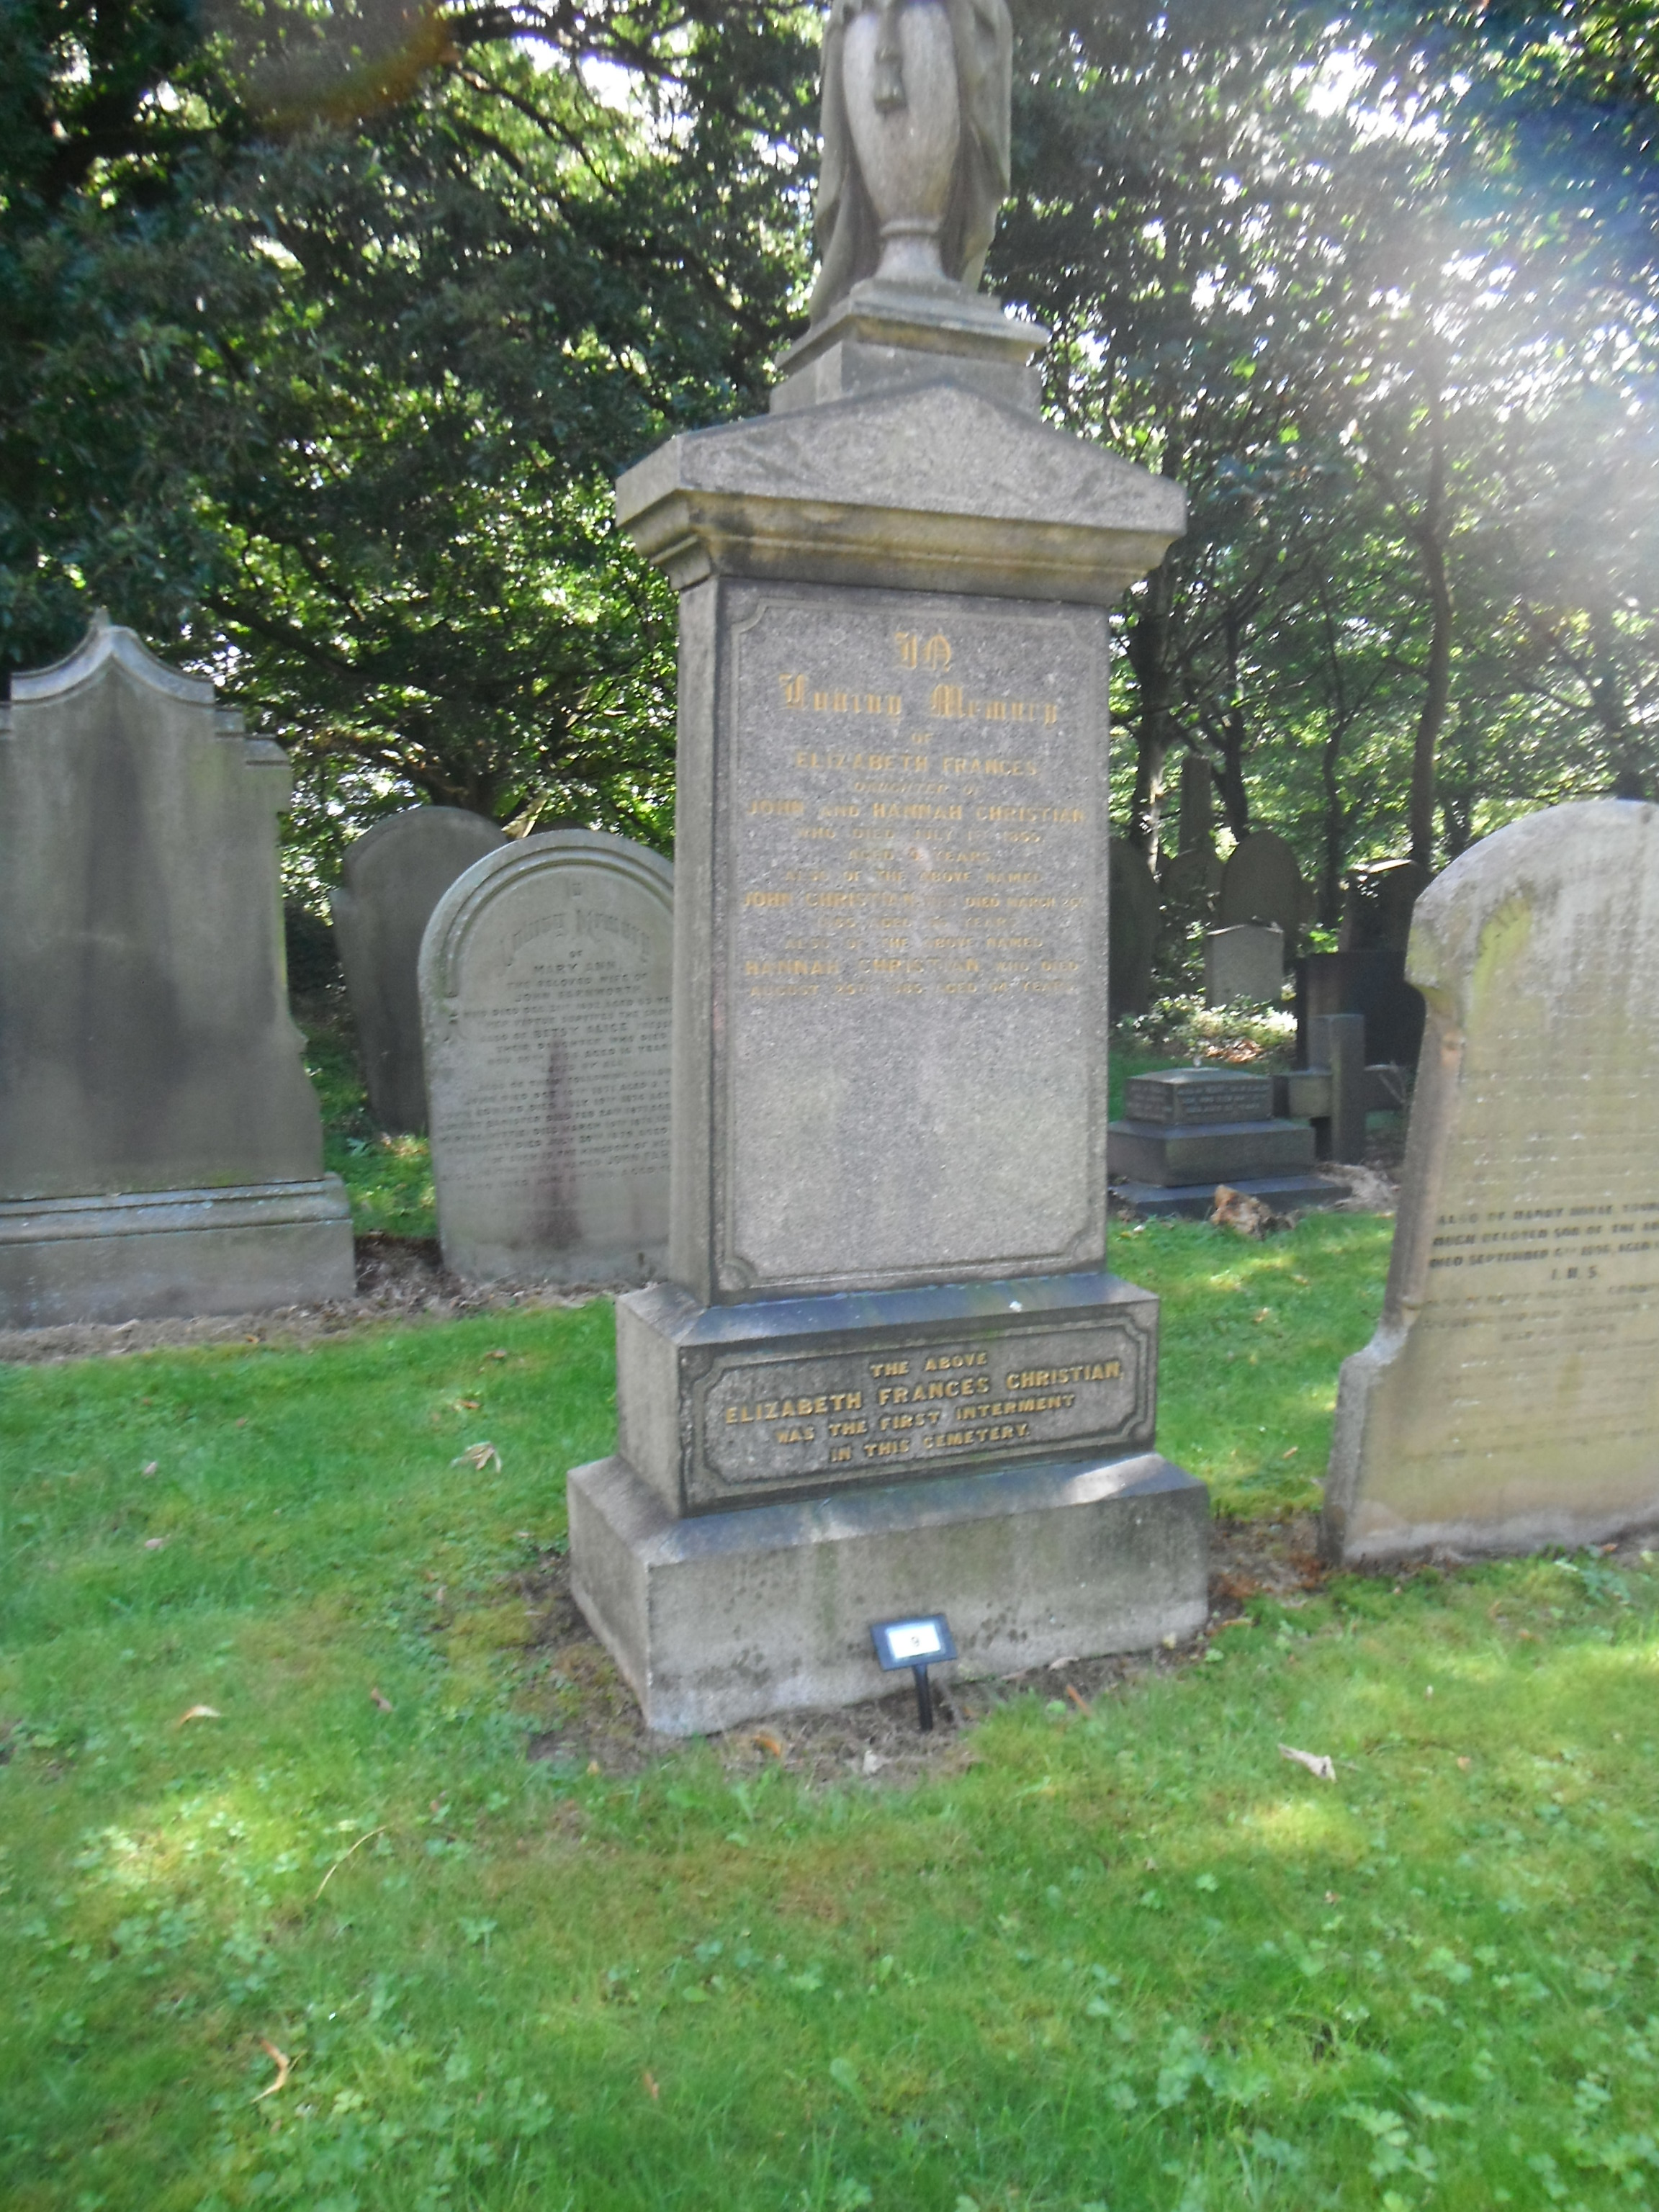 Photo taken by me - the oldest grave in Preston Cemetery